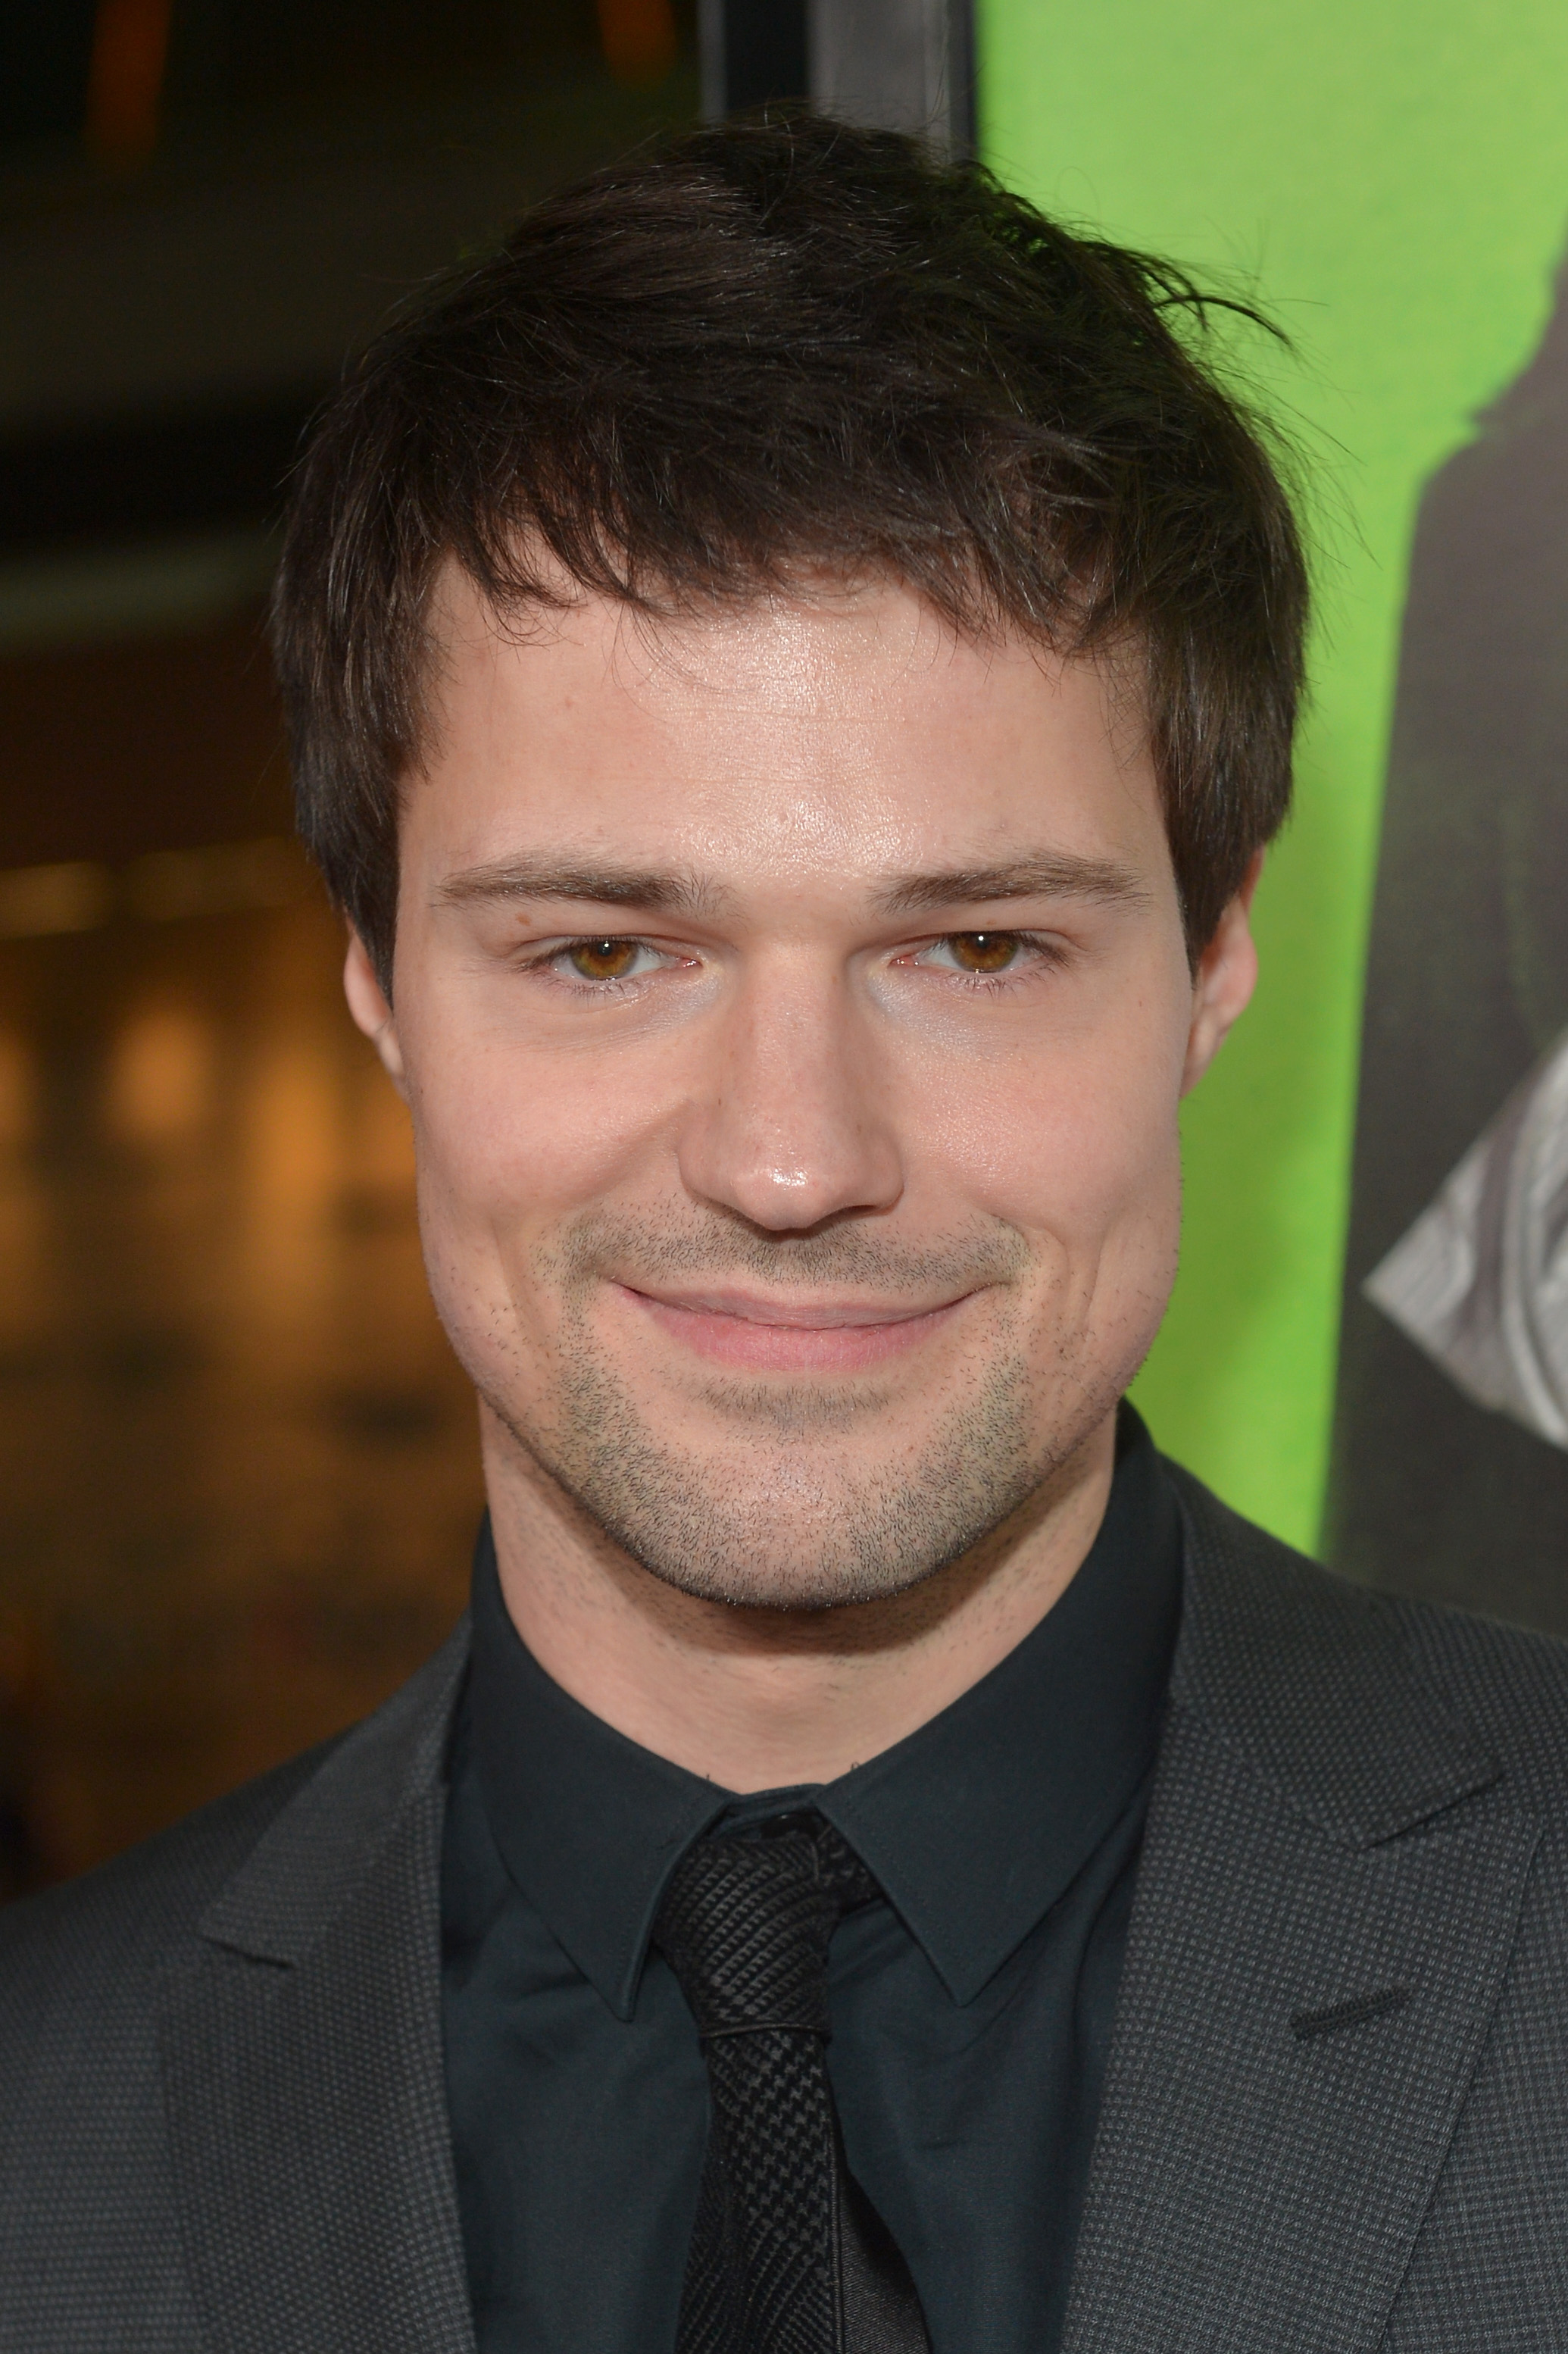 Actor Danila Kozlovsky arrives at The Weinstein Company's premiere of 'Vampire Academy' at Regal 14 at L.A. Live Downtown on February 4, 2014, in Los Angeles, California. (Getty Images)